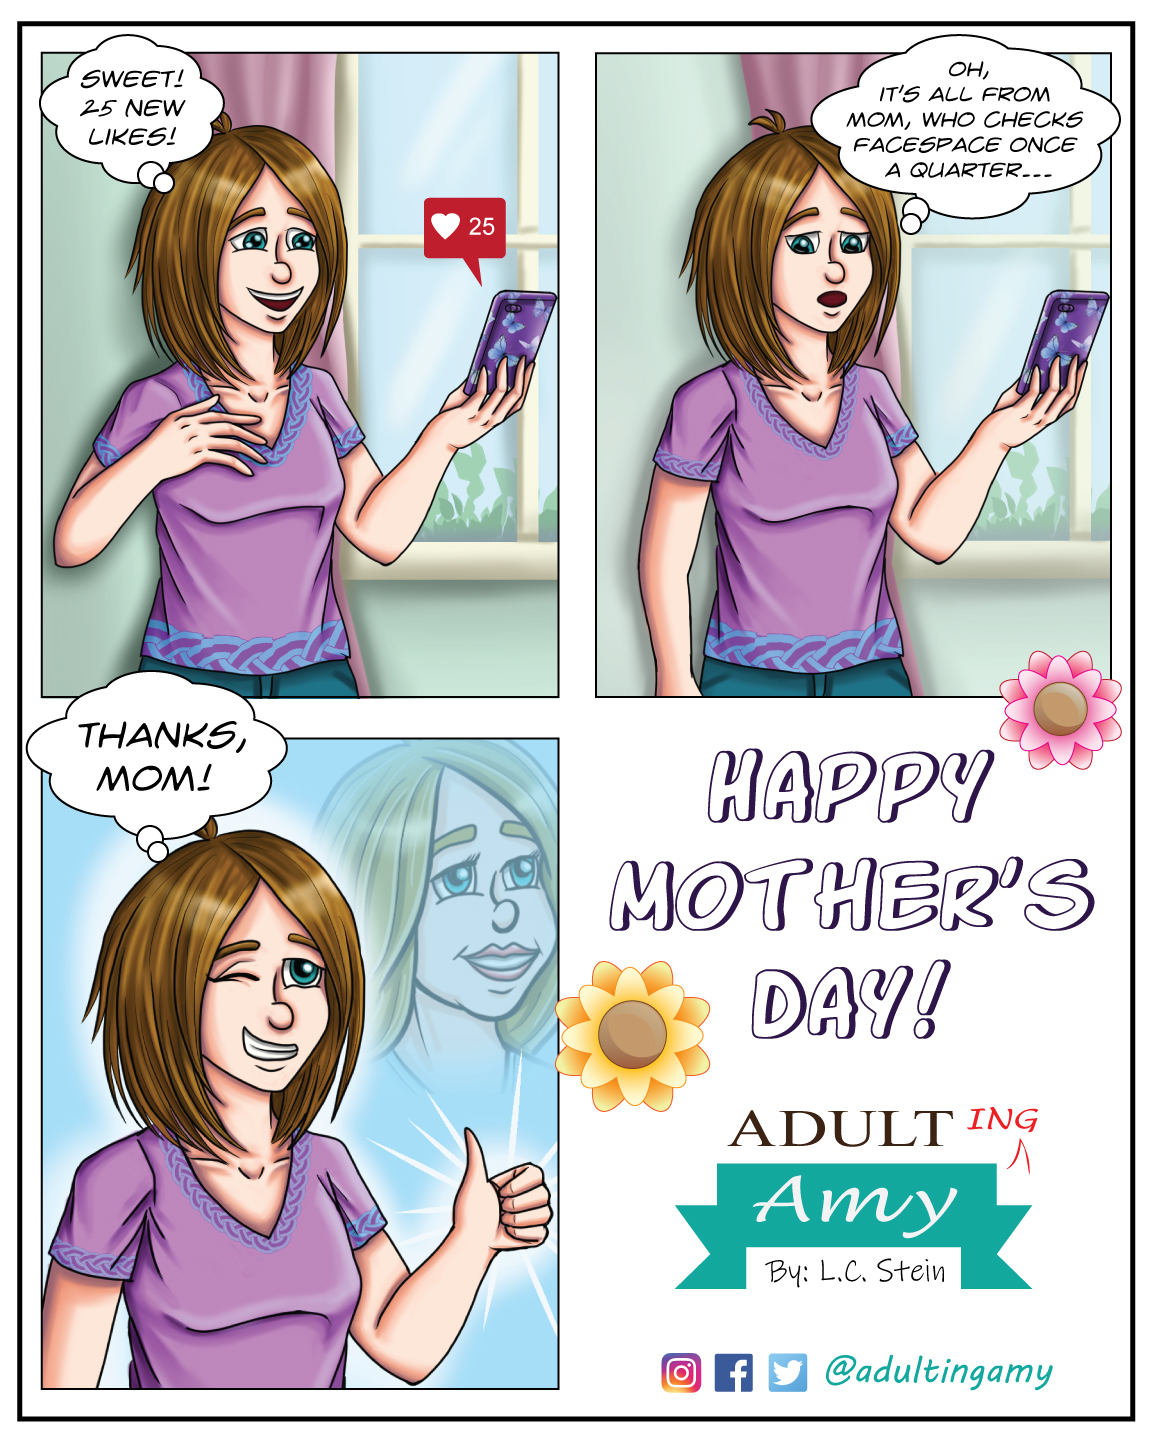 A Mother's Likes